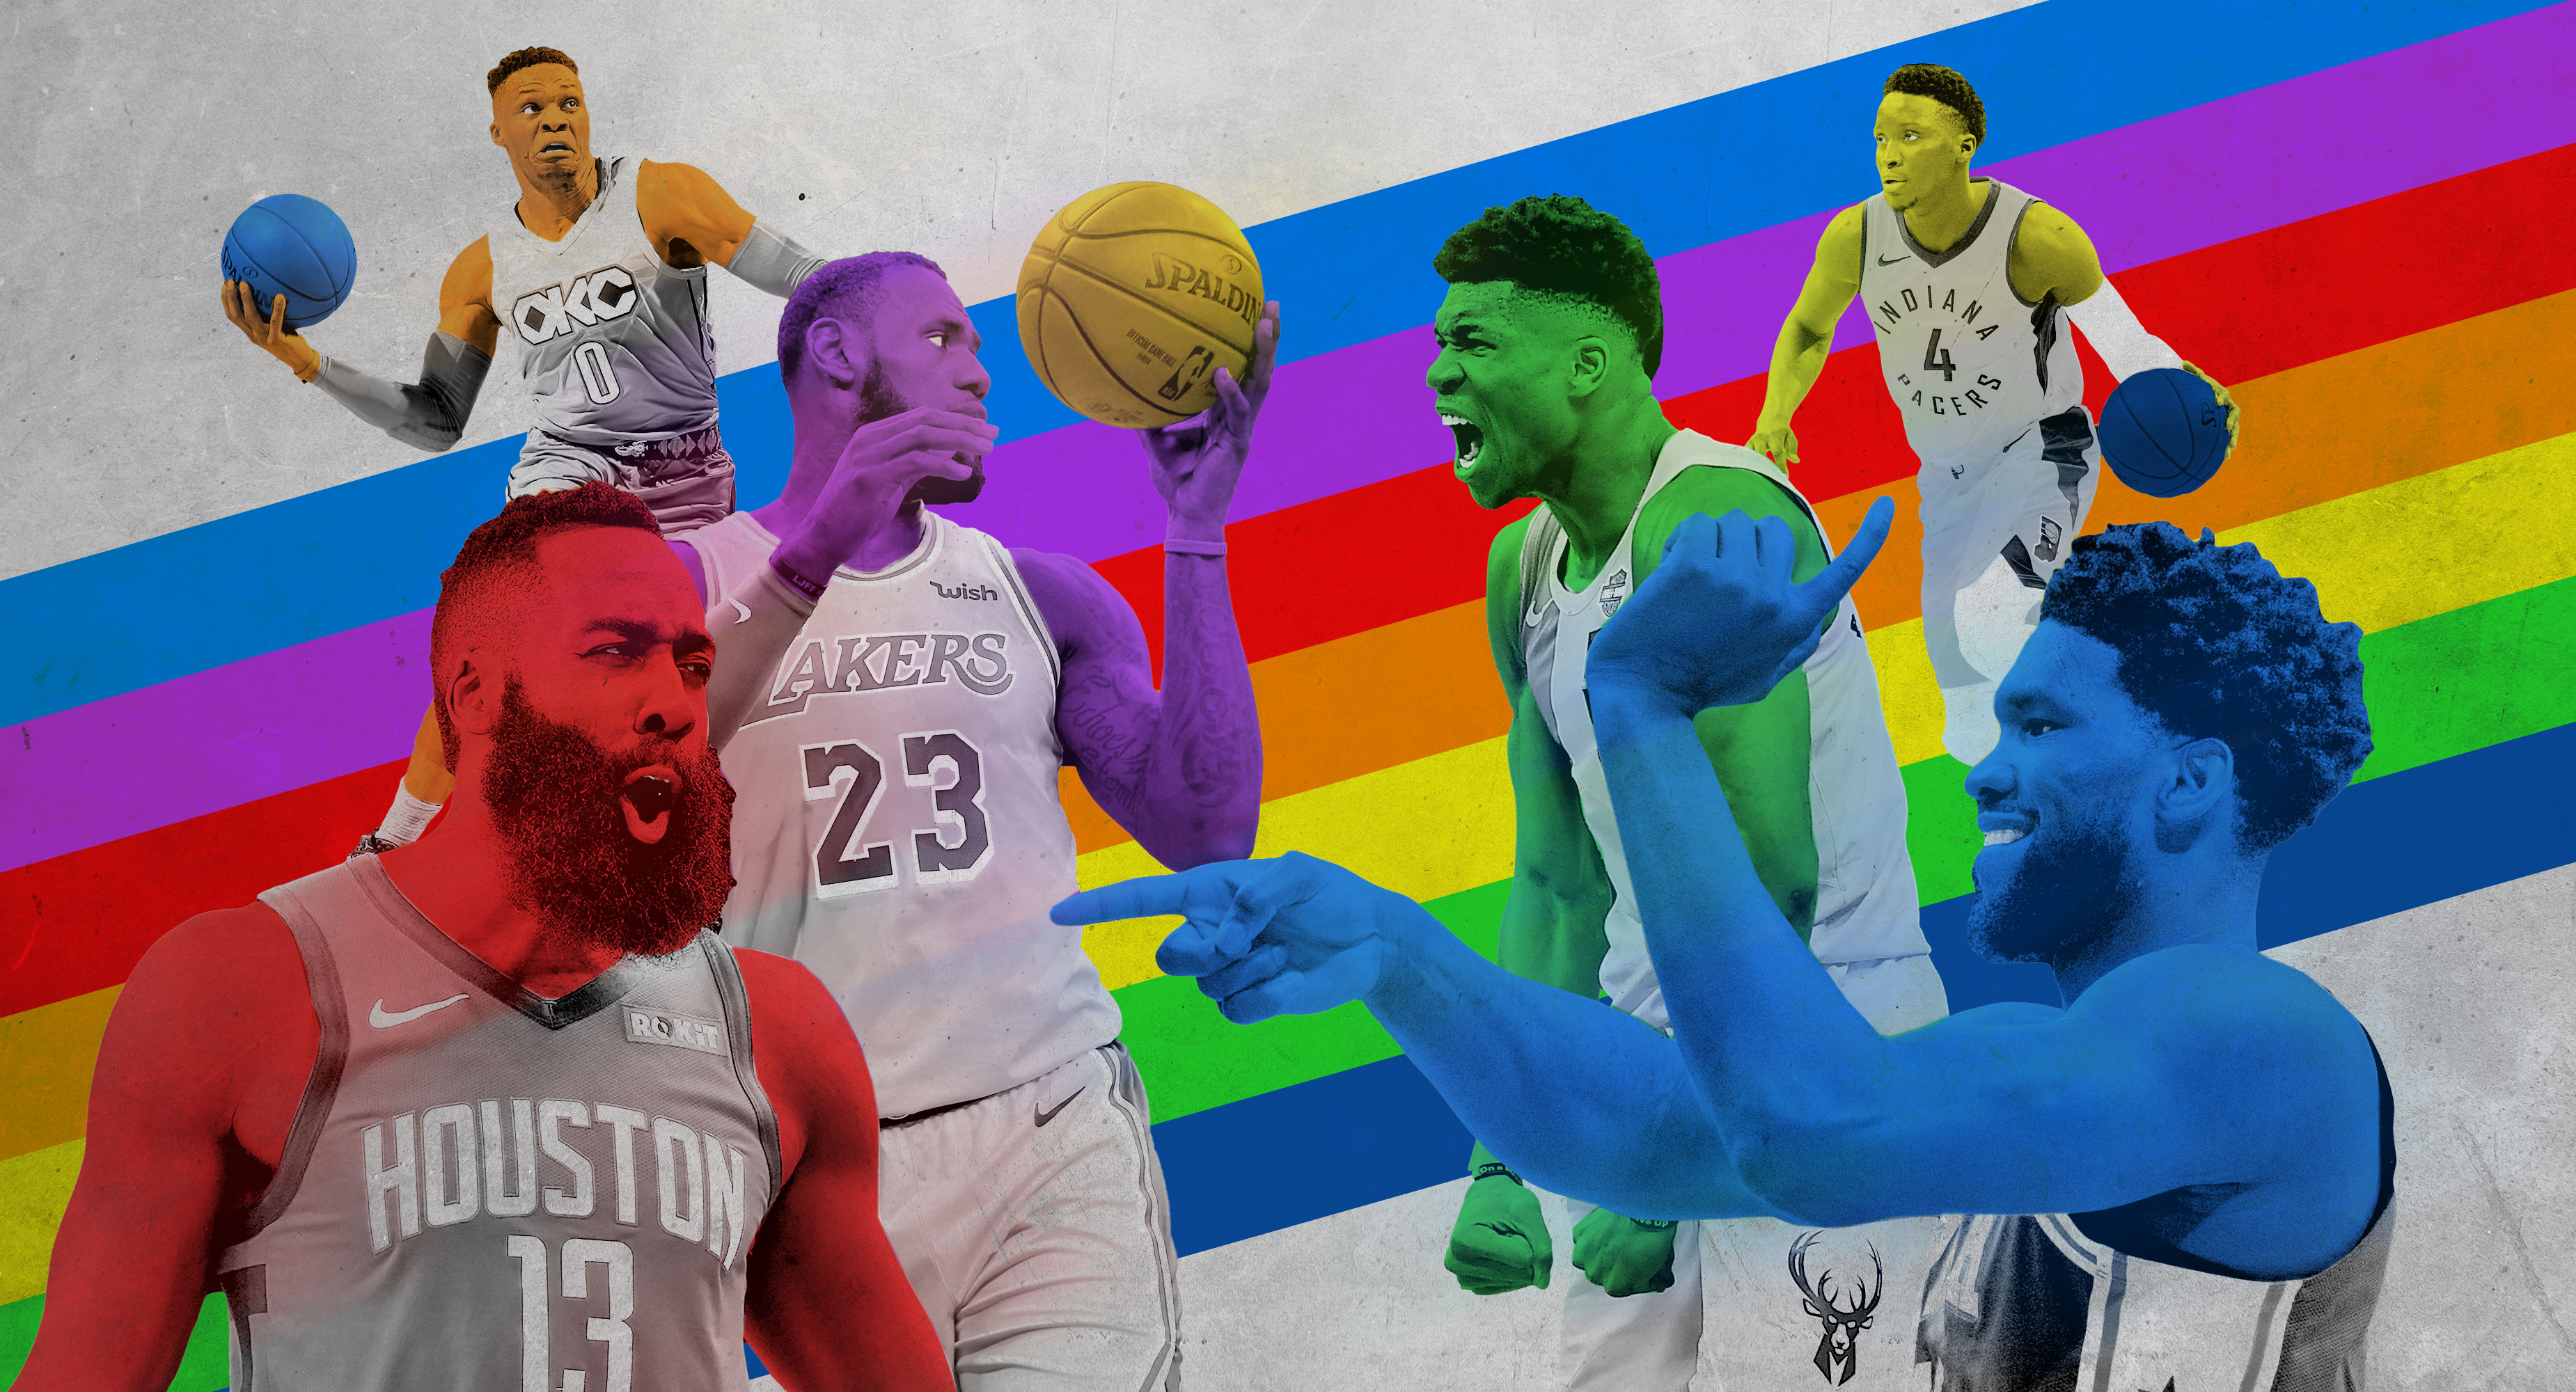 6a7a430c03f Picking the 2019 NBA All-Star Teams - The Ringer